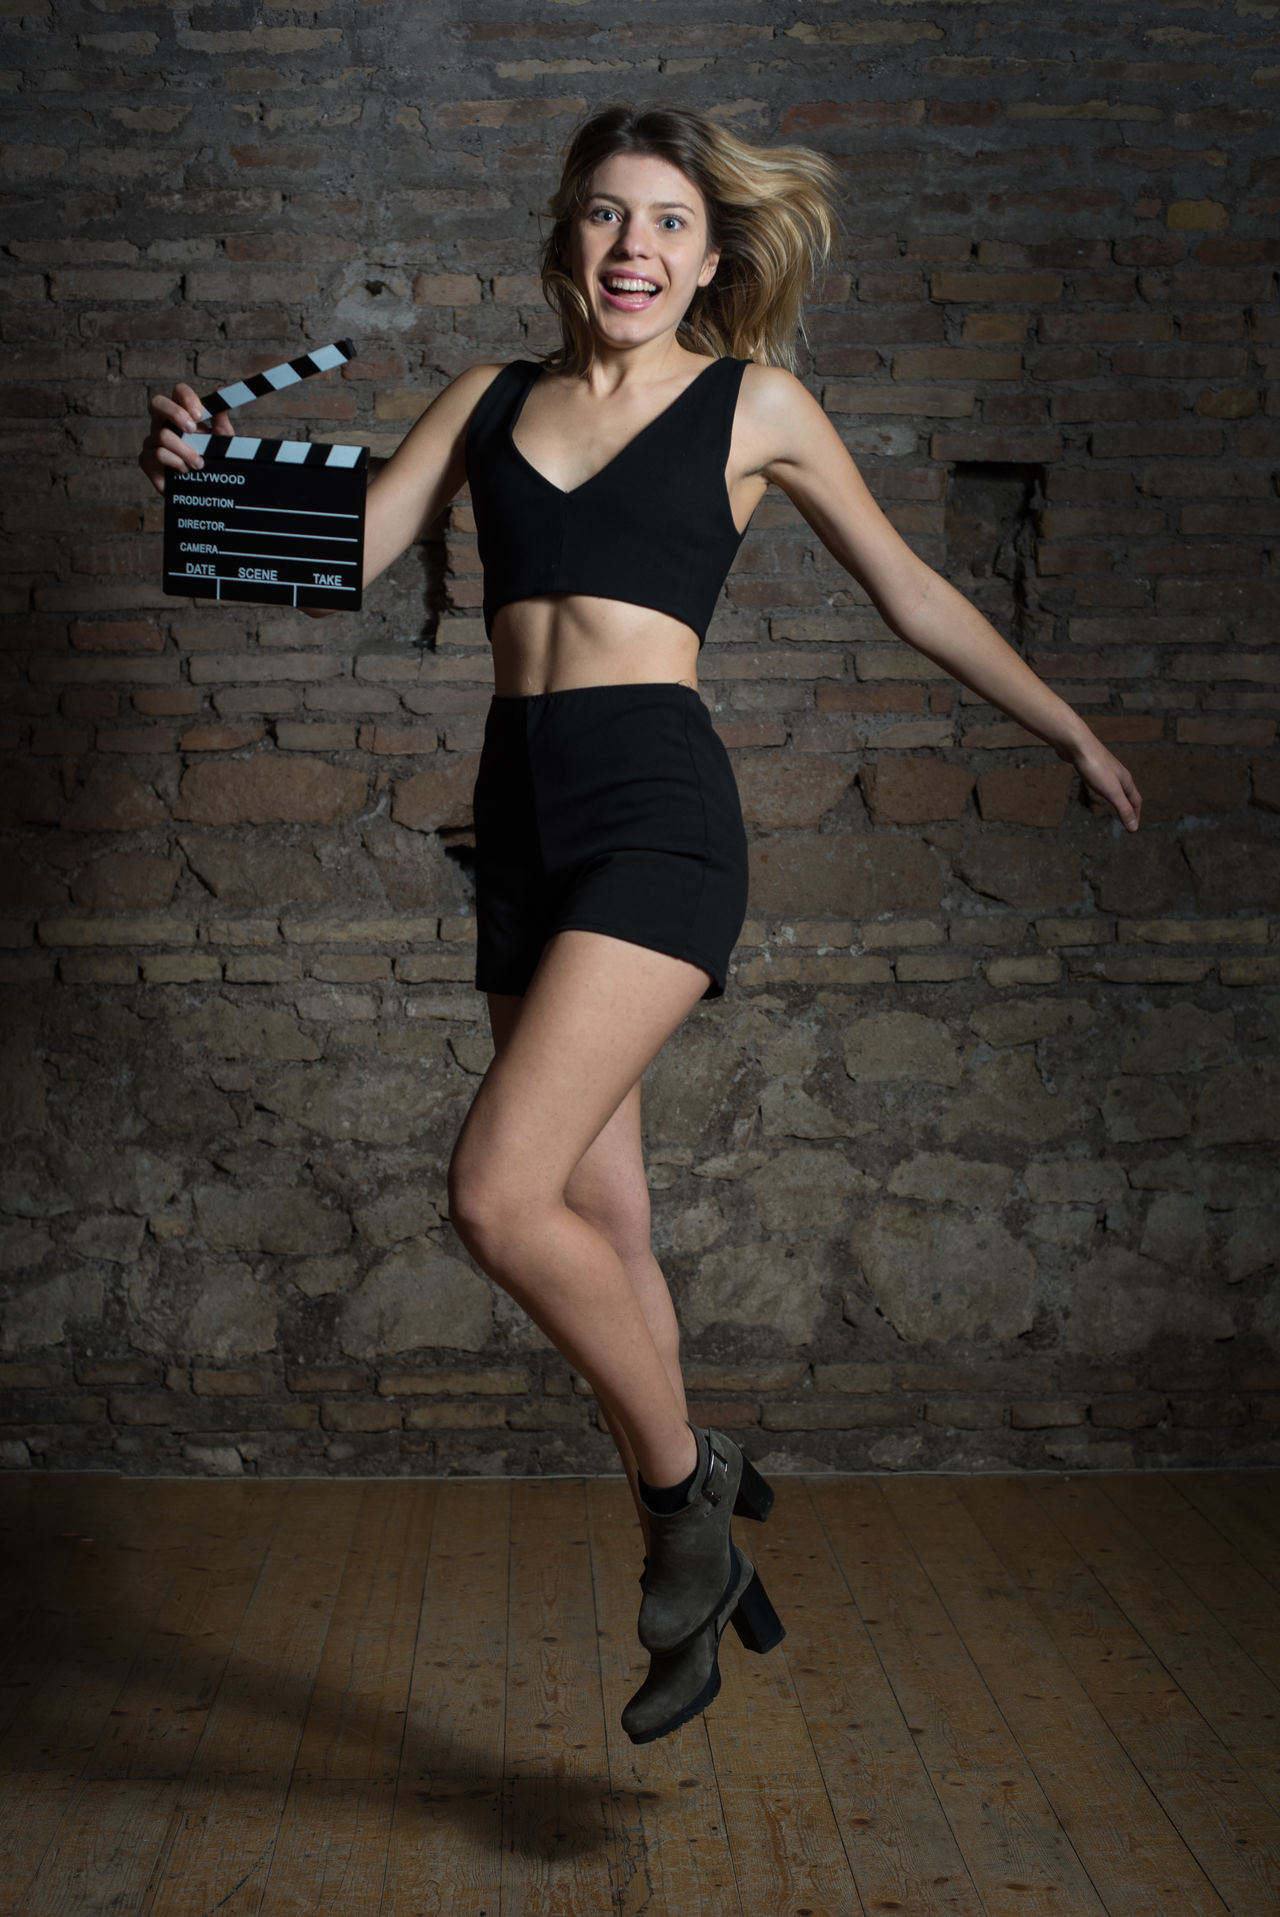 Young blonde actress with movie clapper board Actress Audition Beautiful Blond Hair Blonde Cinema Clapboard Clapper Clapperboard Film Girl Happy Jumping Looking At Camera MOVIE Pretty Smiling Woman Young